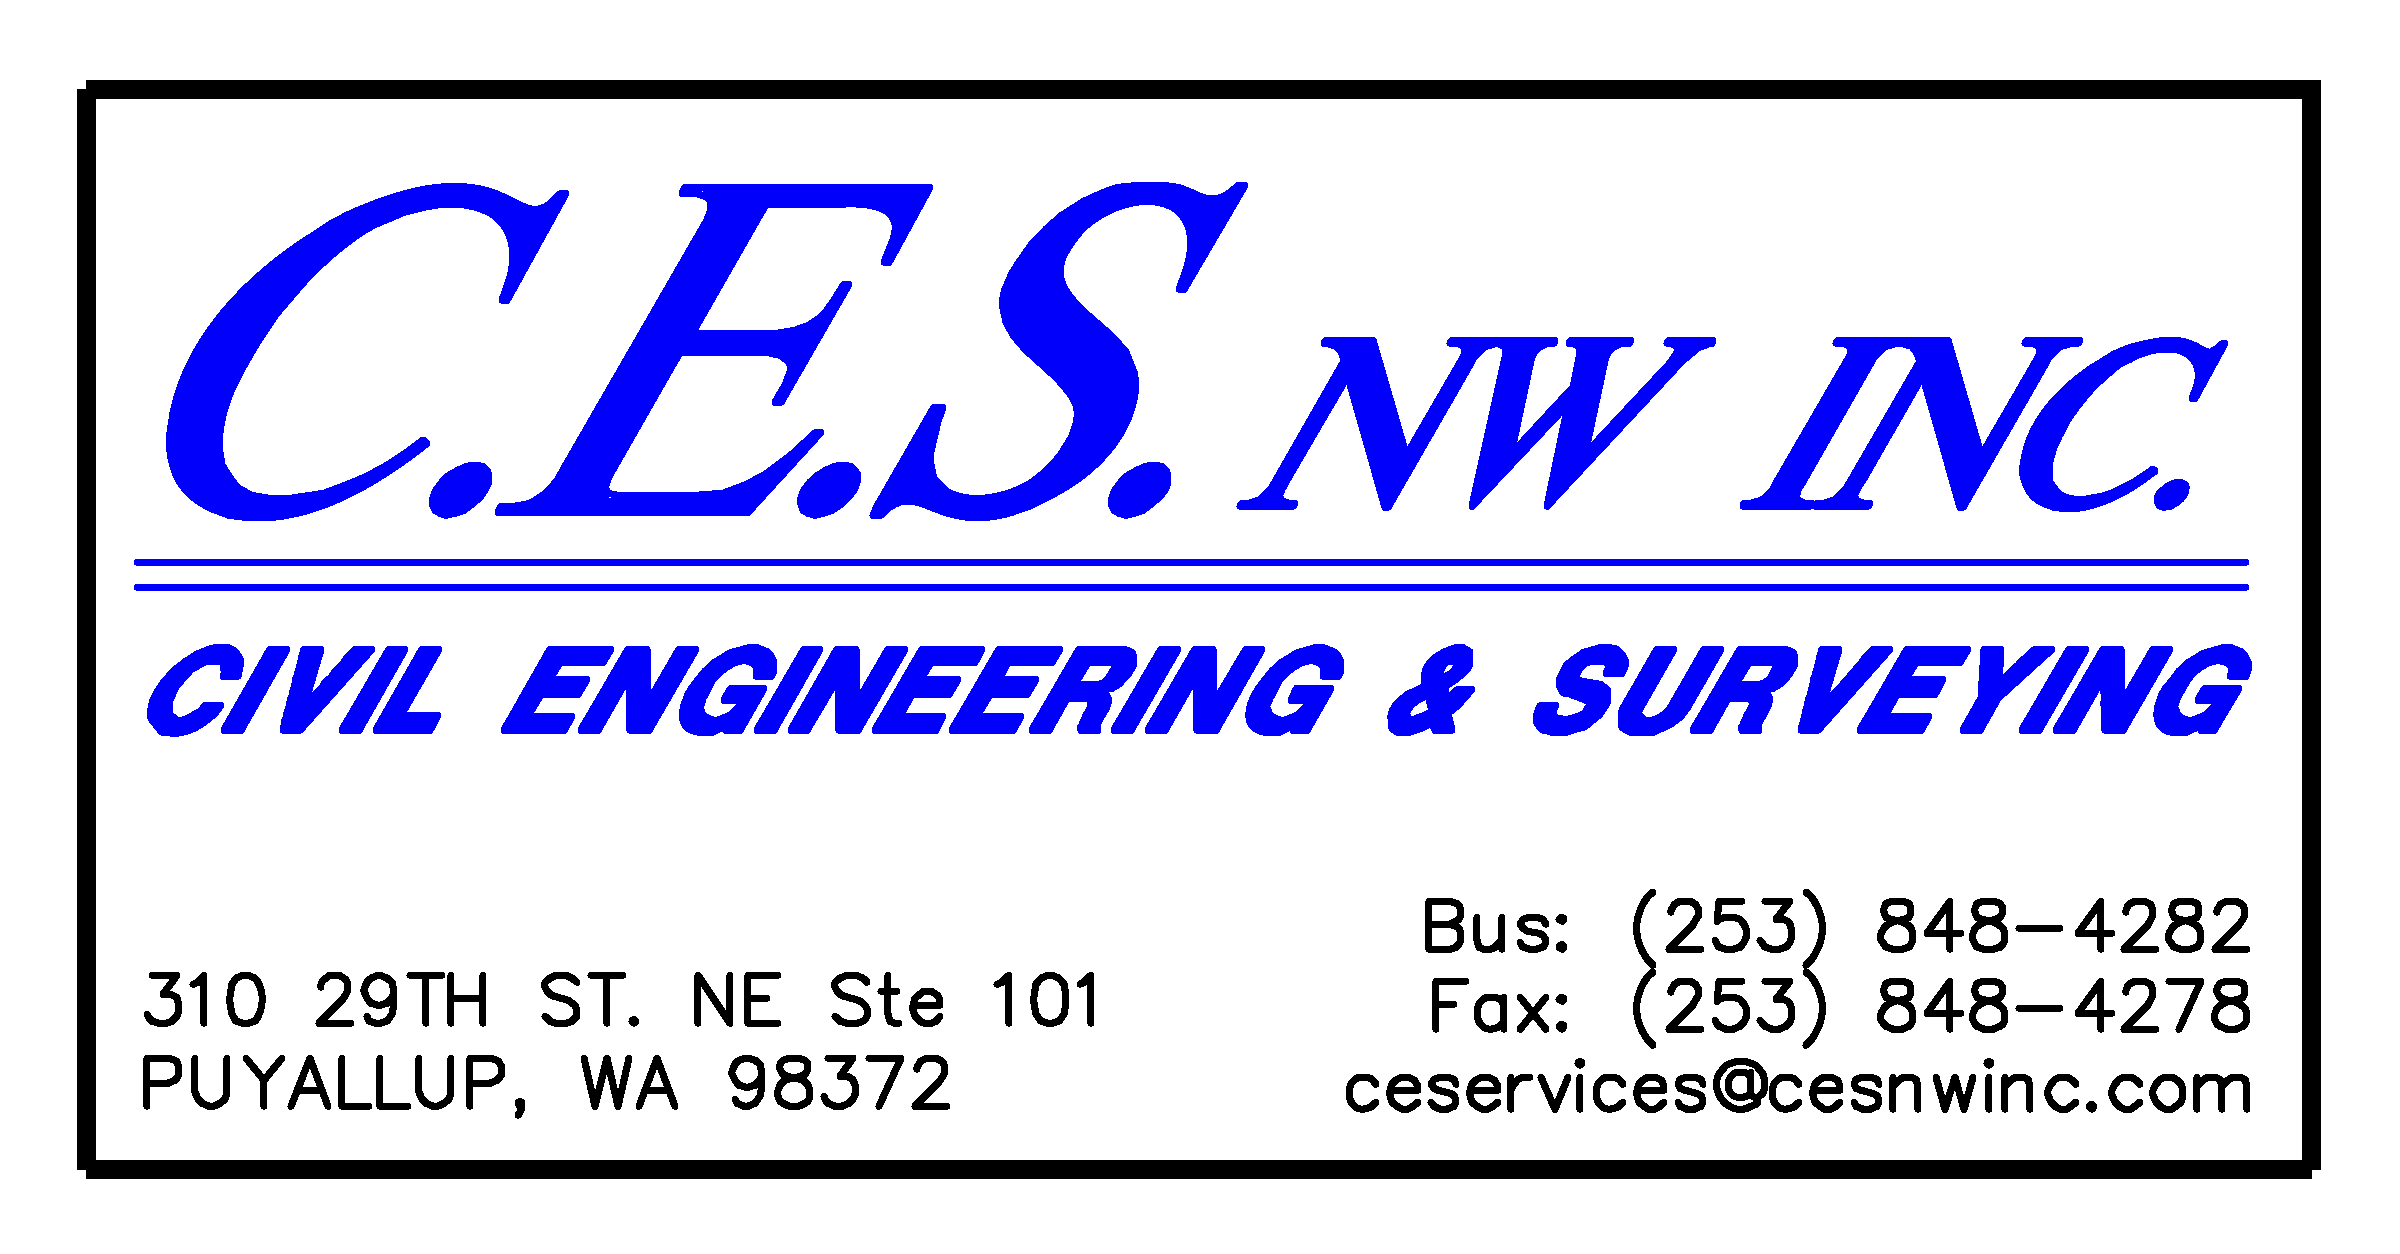 C.E.S. NW Inc. Civil Engineering and Surveying Logo